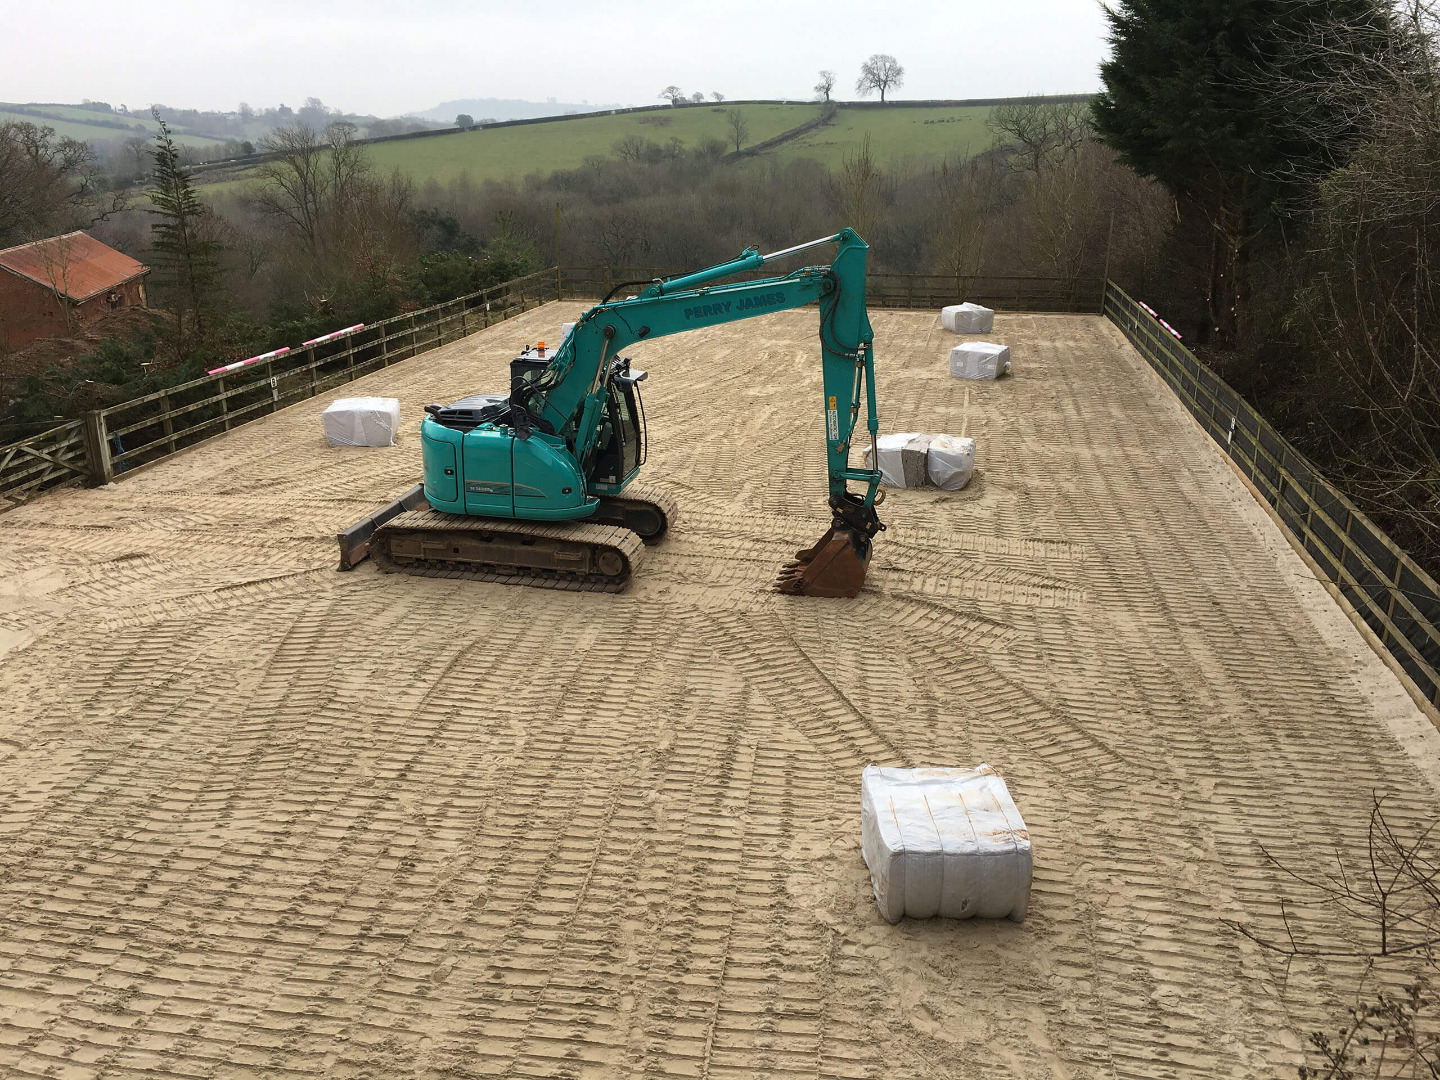 Machine levelling out sand surface ready for fibre installation on a riding arena in devon